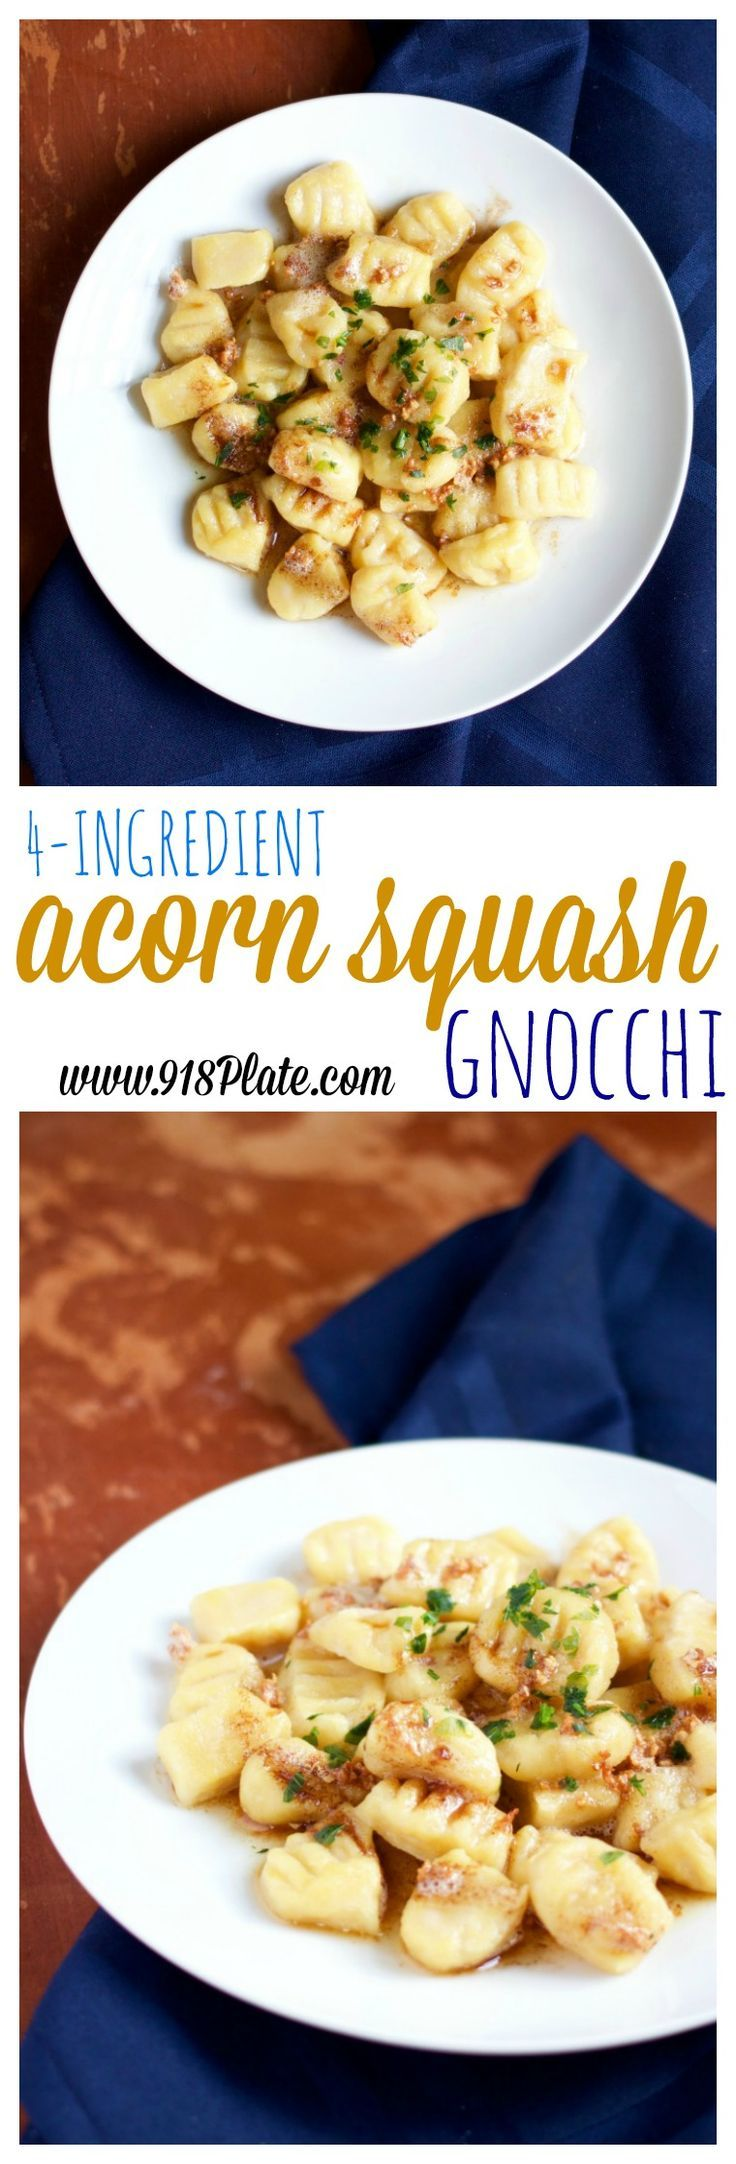 Share on Yummly  Eating acorn squash gnocchi with brown butter and crispy garlic will warm your heart and bring the autumn season straight into your kitchen. (Vegetarian)